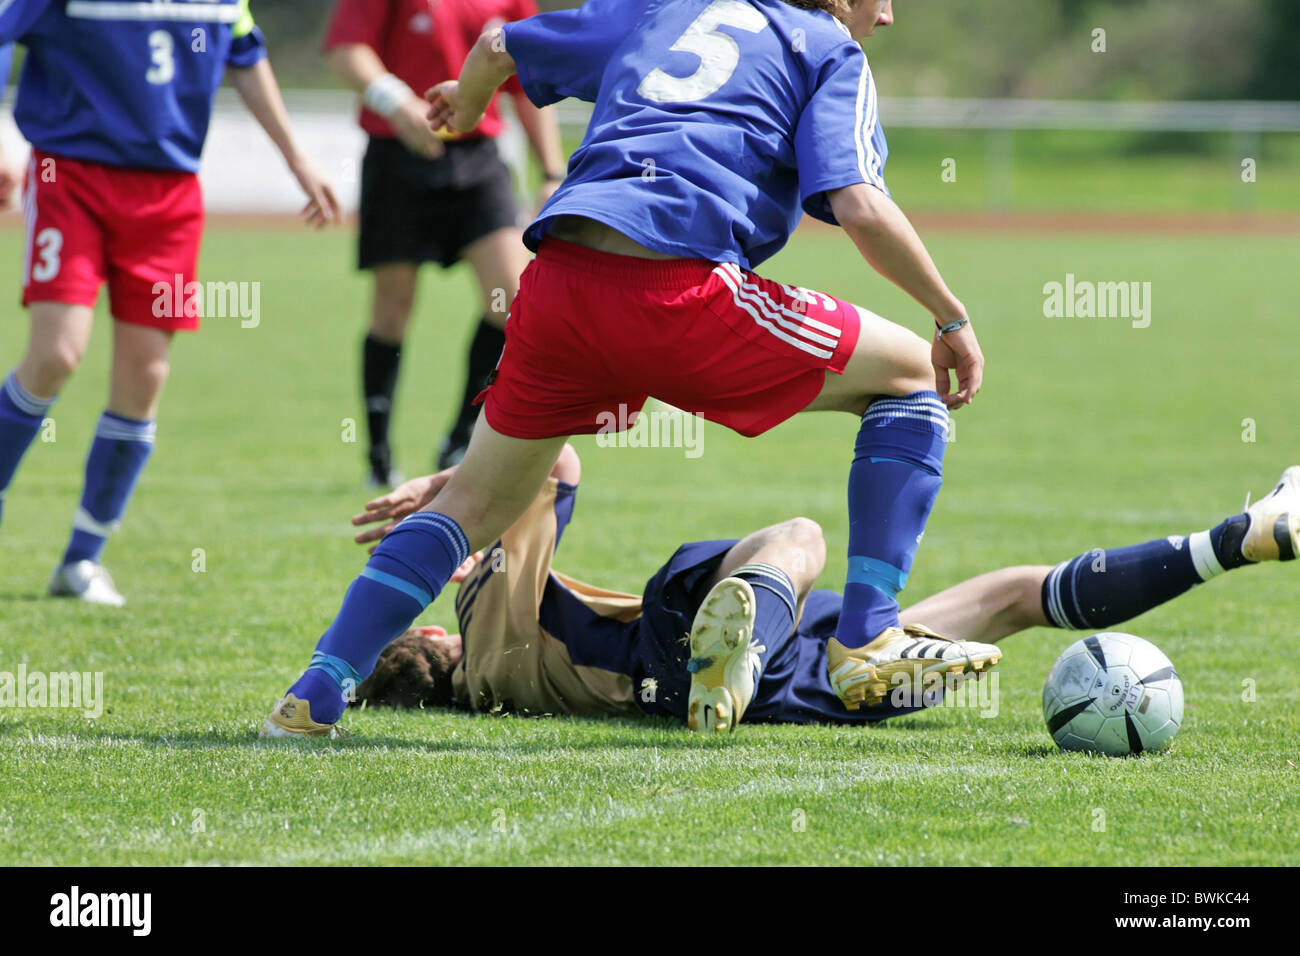 Fouls and misconduct (association football)